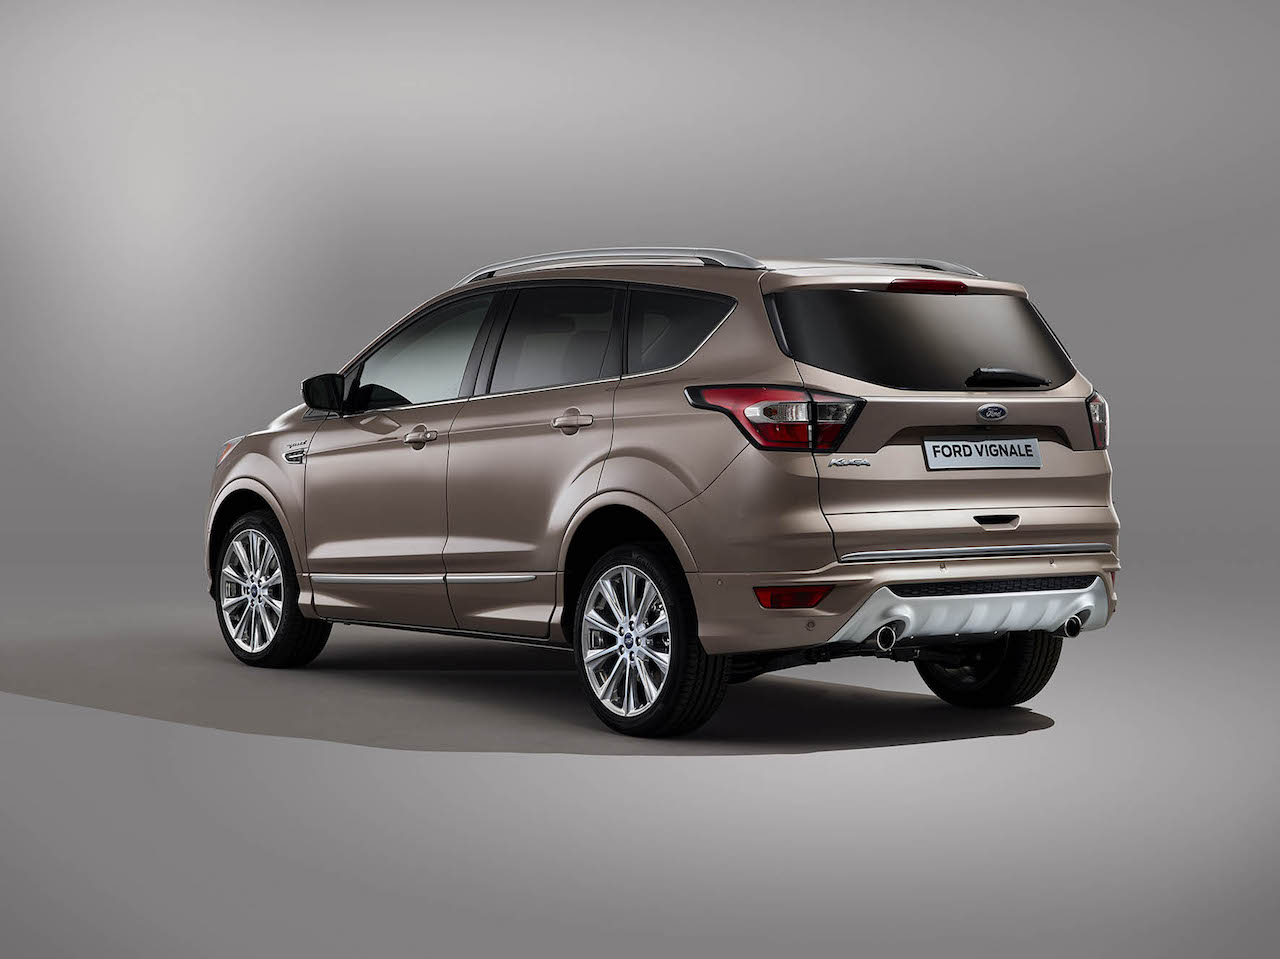 2017 ford kuga photo gallery autoblog 2017 2018 best cars reviews. Black Bedroom Furniture Sets. Home Design Ideas